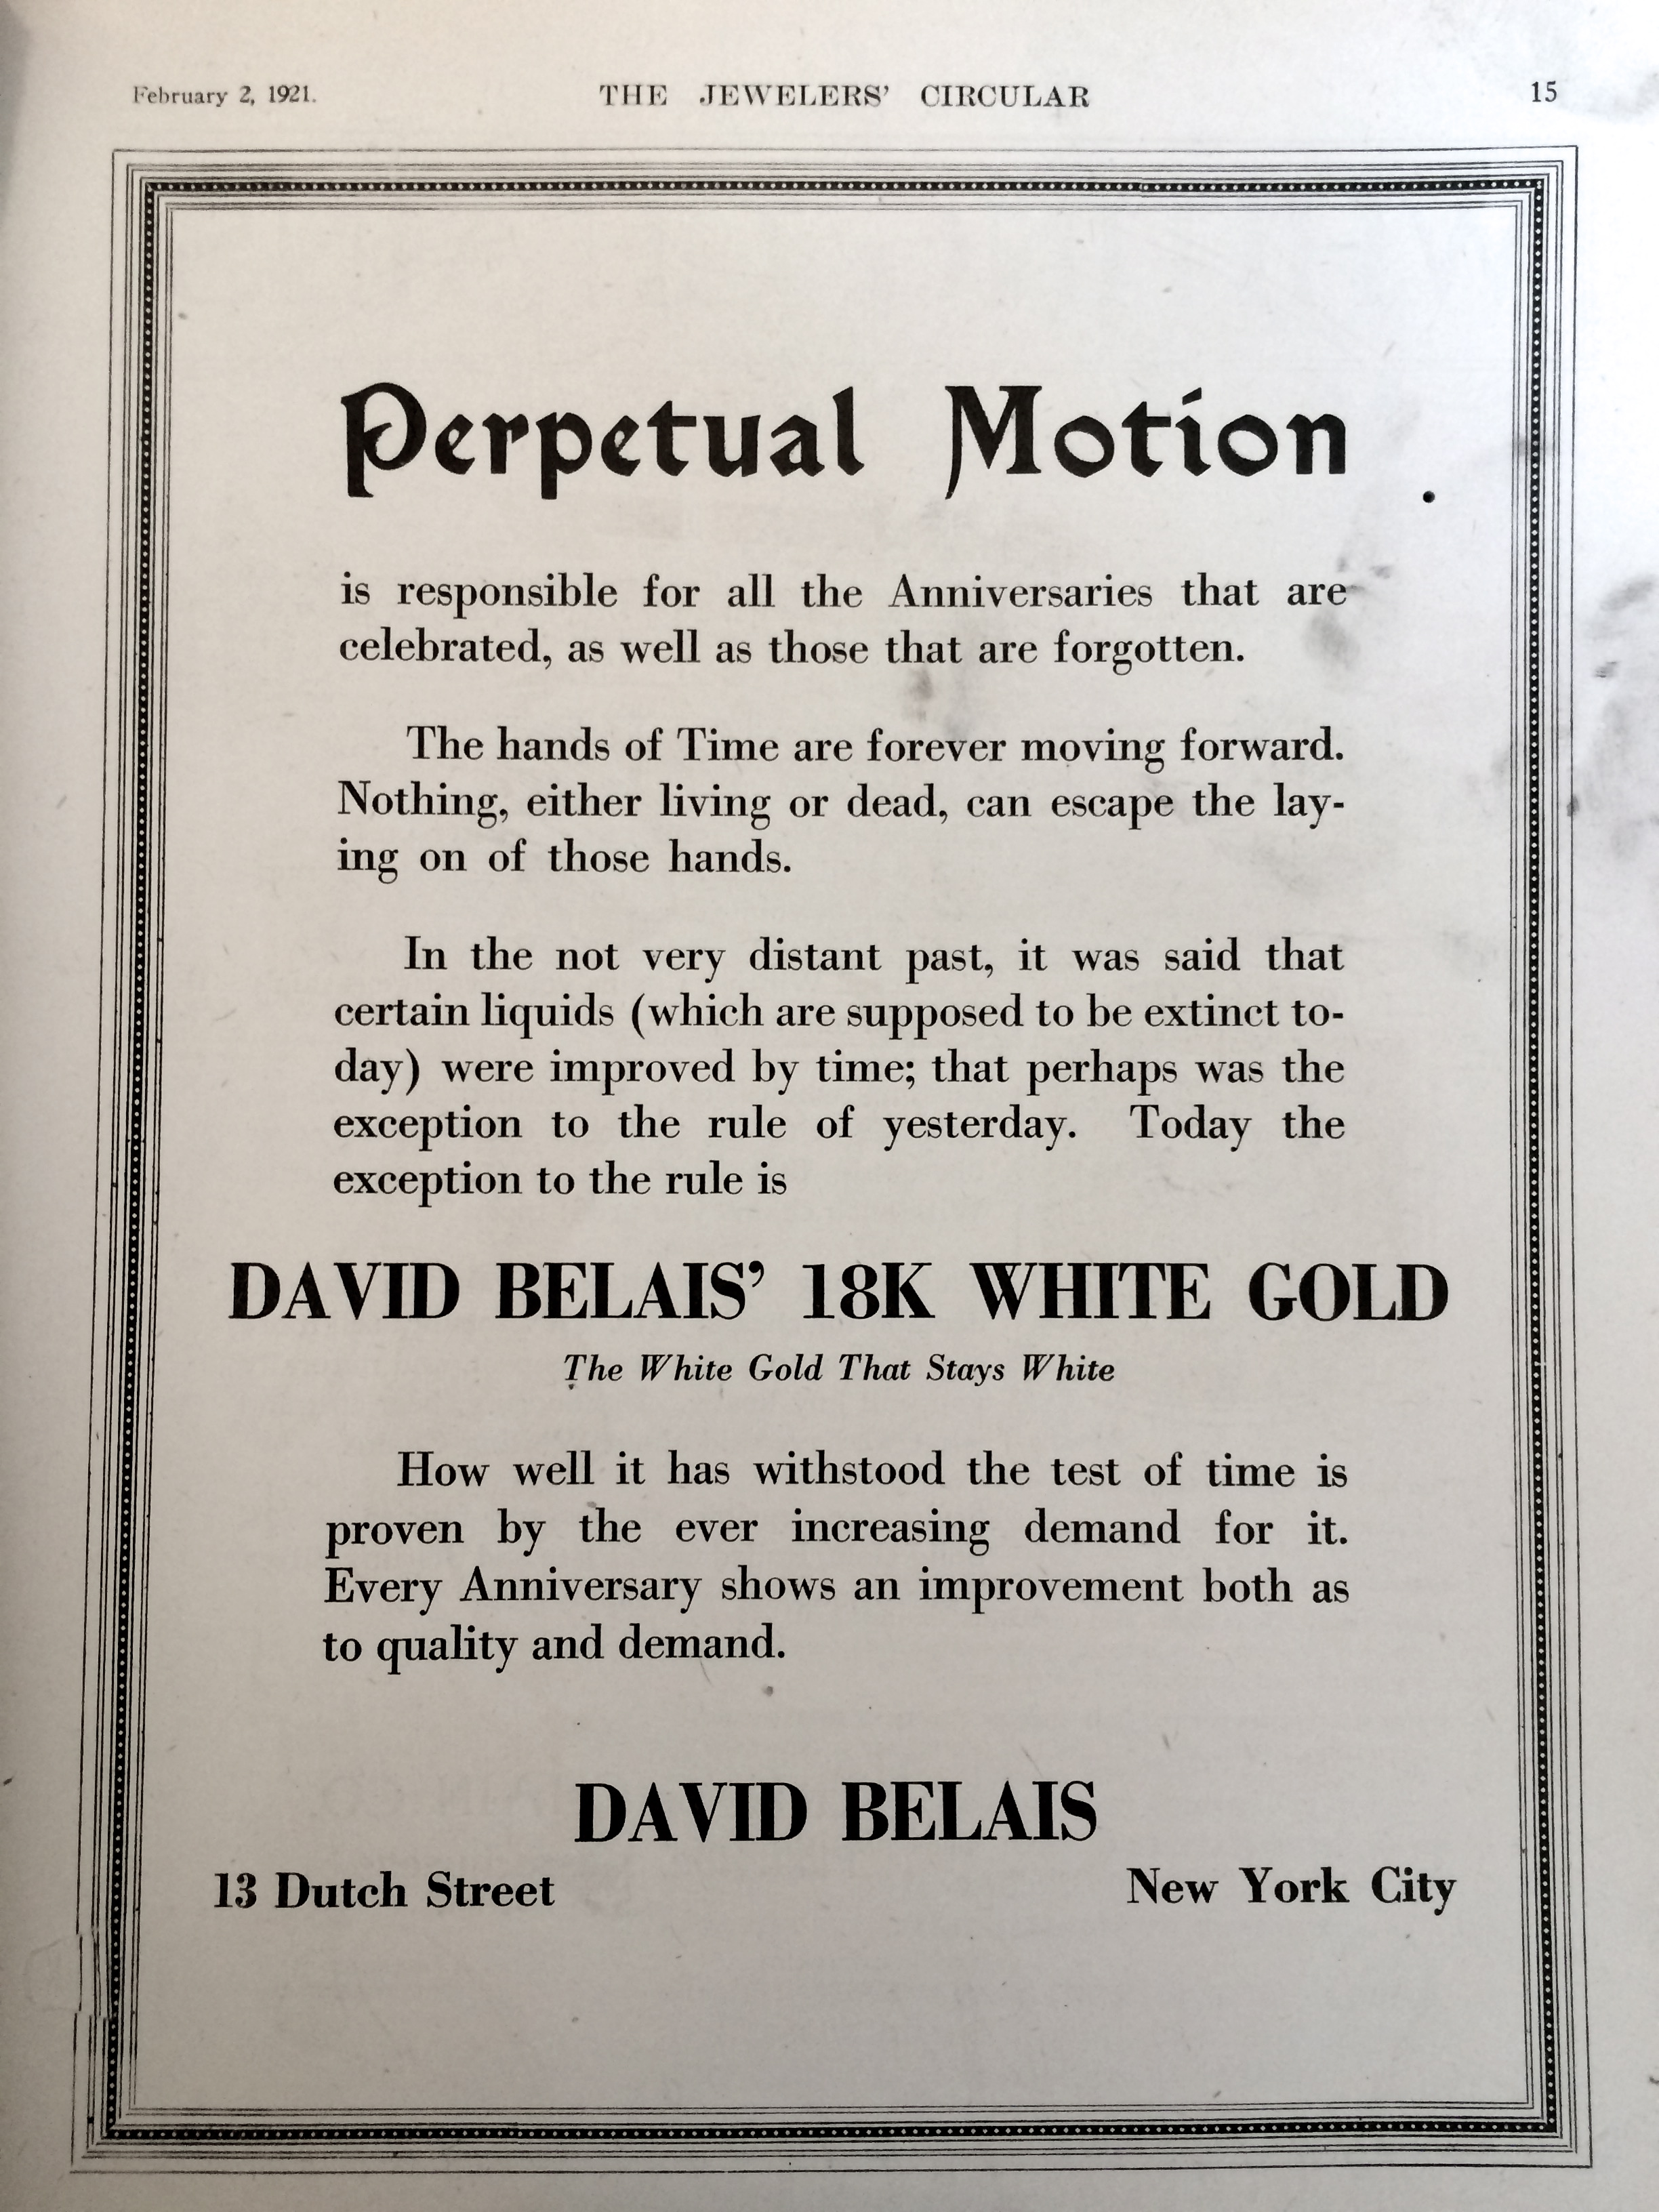 """David Belais' 18k White Gold. The White Gold That Stays White"""